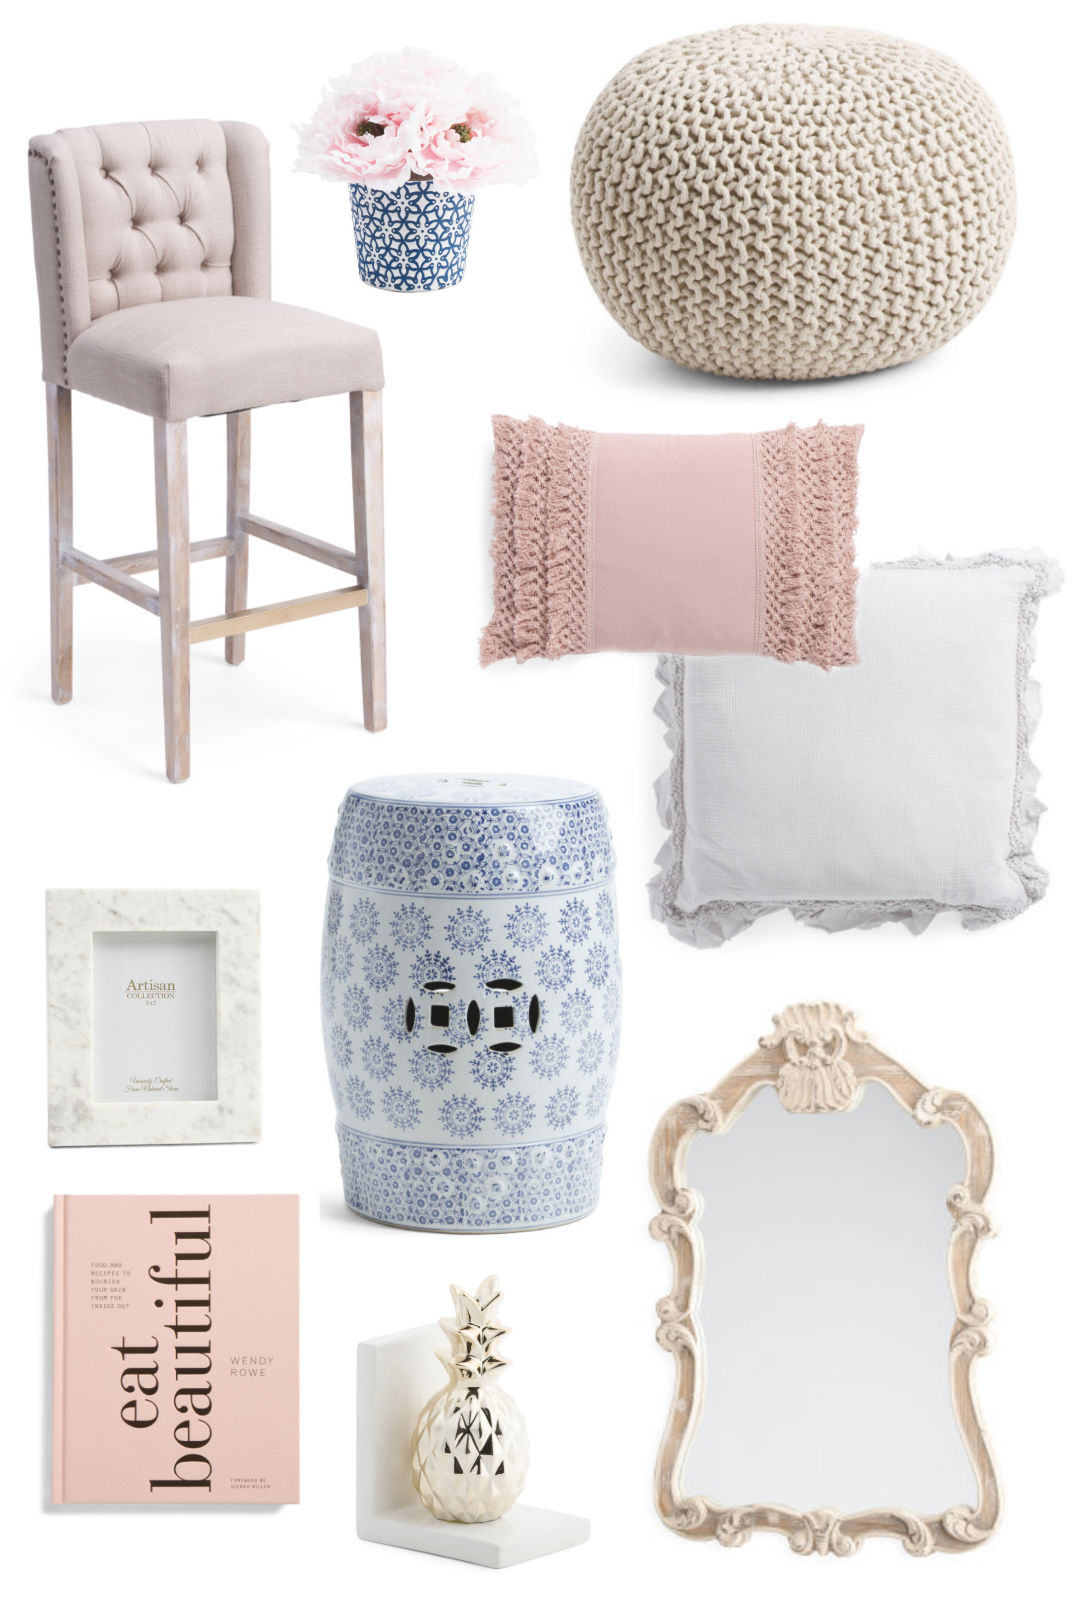 Affordable Home Decor | What's New at TJ Maxx | Strawberry Chic on hobby lobby floor vases, target floor vases, pier 1 imports floor vases, home goods floor vases,